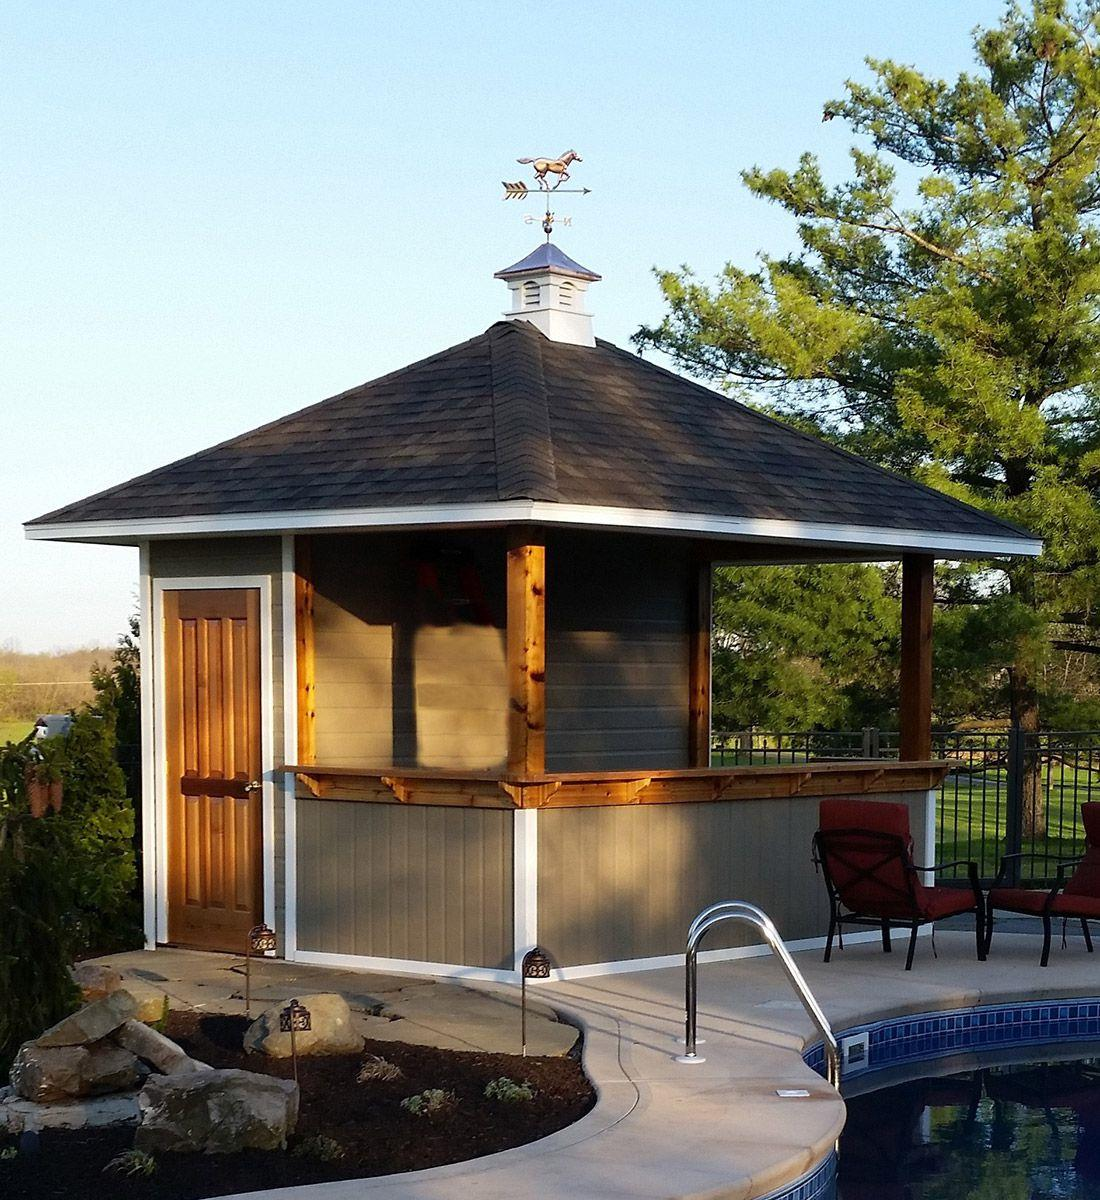 Barside pool cabana photo contest honorable mentions Summerwood  ID Number 194252